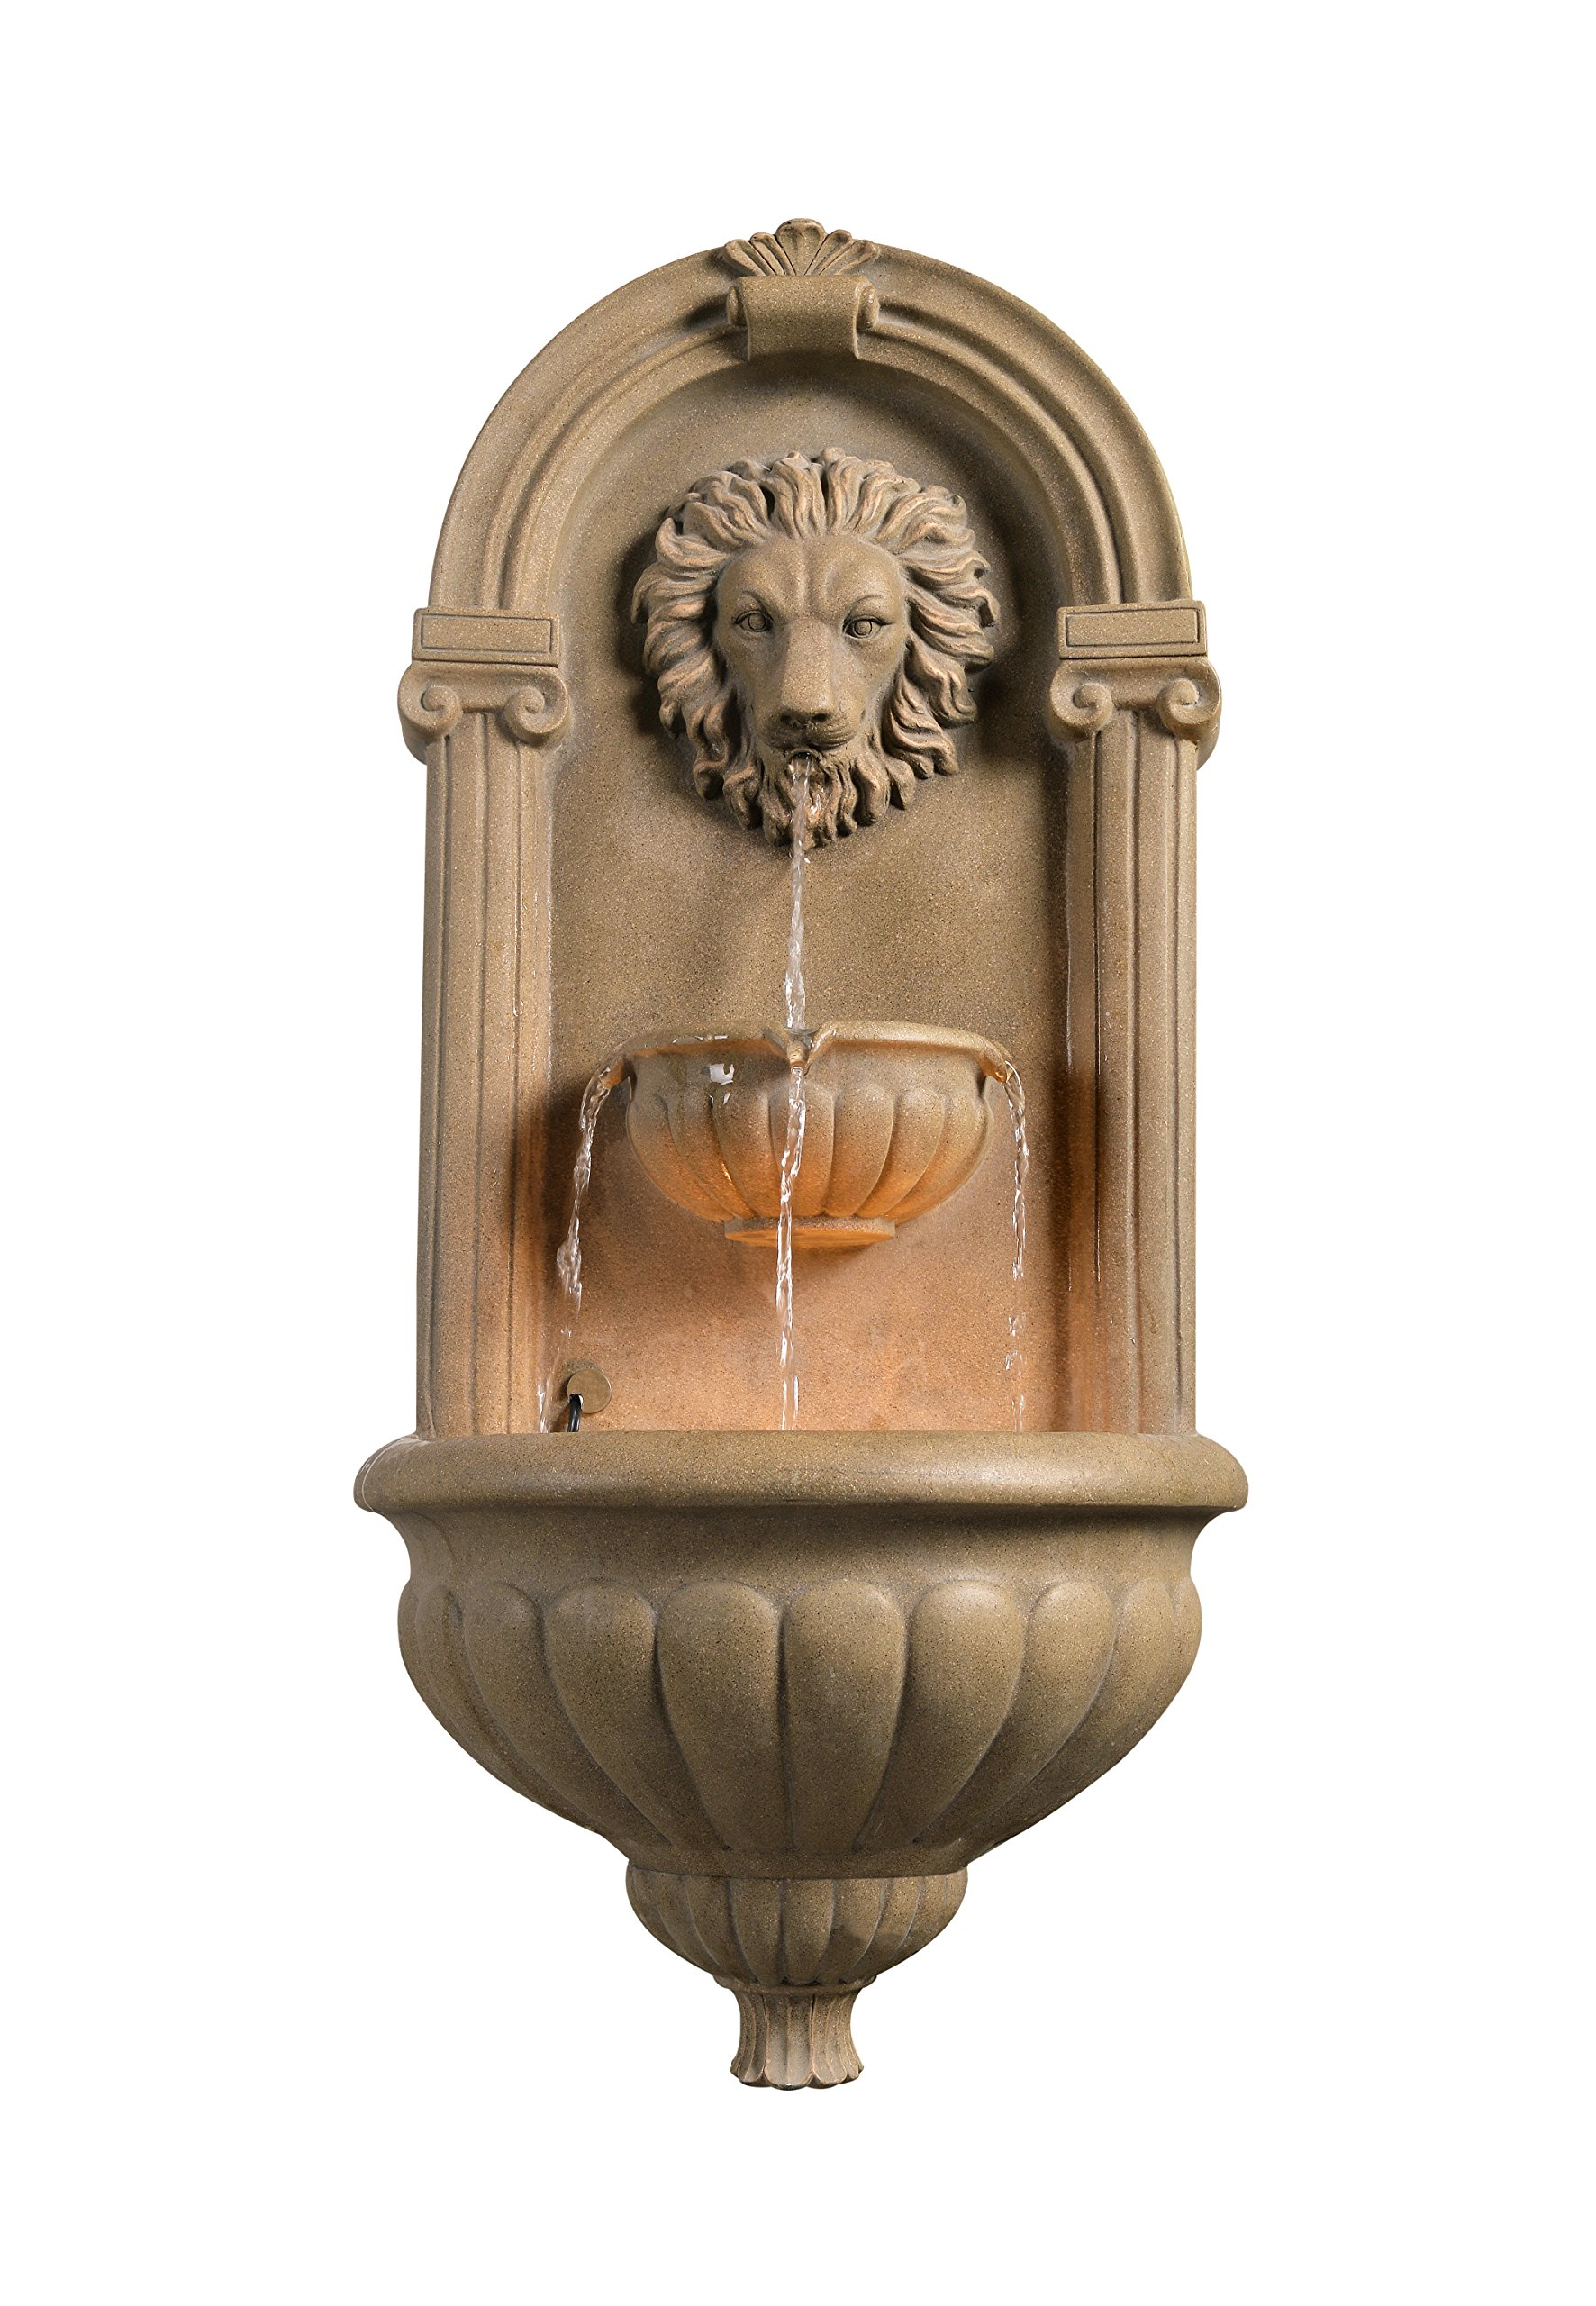 Kenroy Home 50026SS Regal Wall Fountain, Sandstone Finish by Kenroy Home